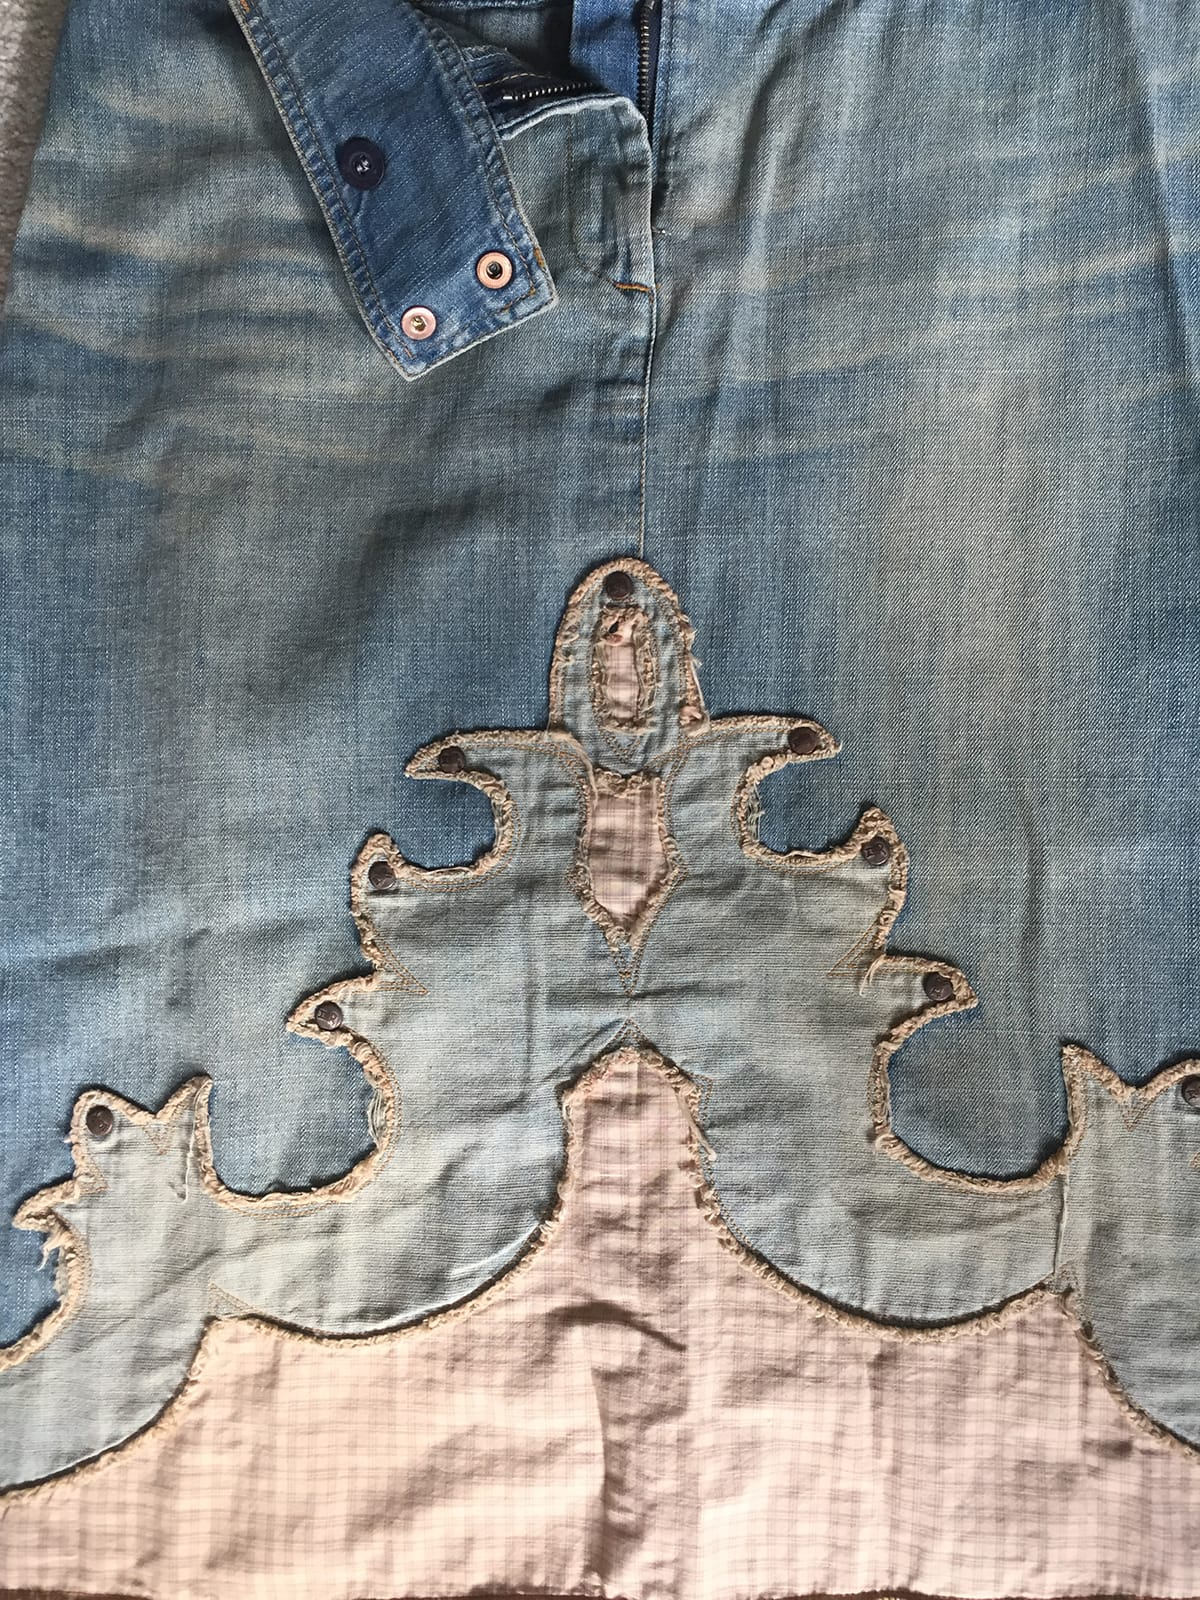 pillow made from a jeans skirt